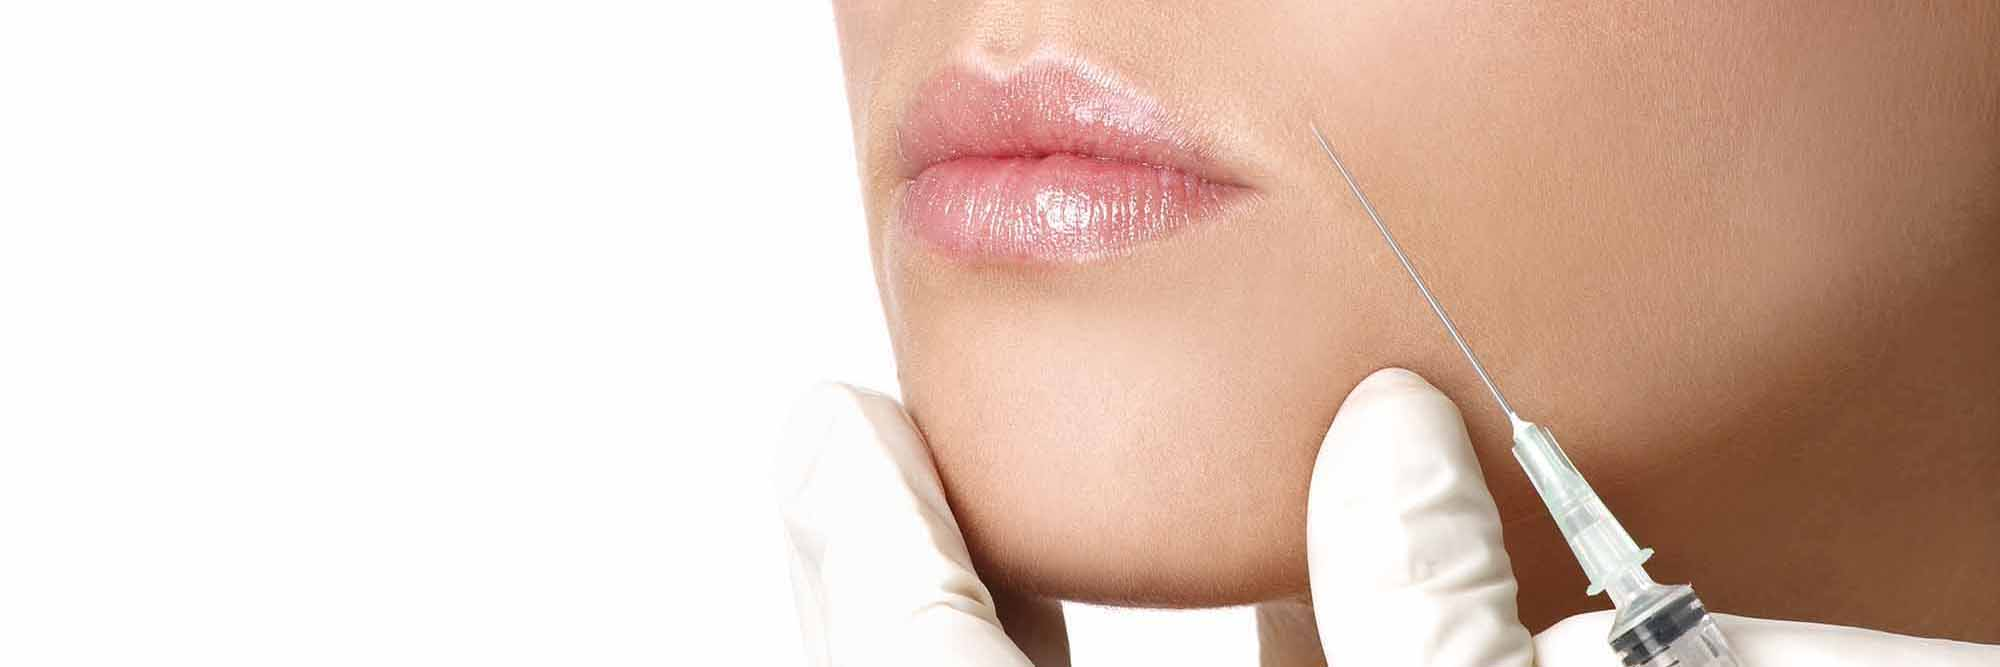 Lip Injections In Pasadena Ca Burbank Glendale Le